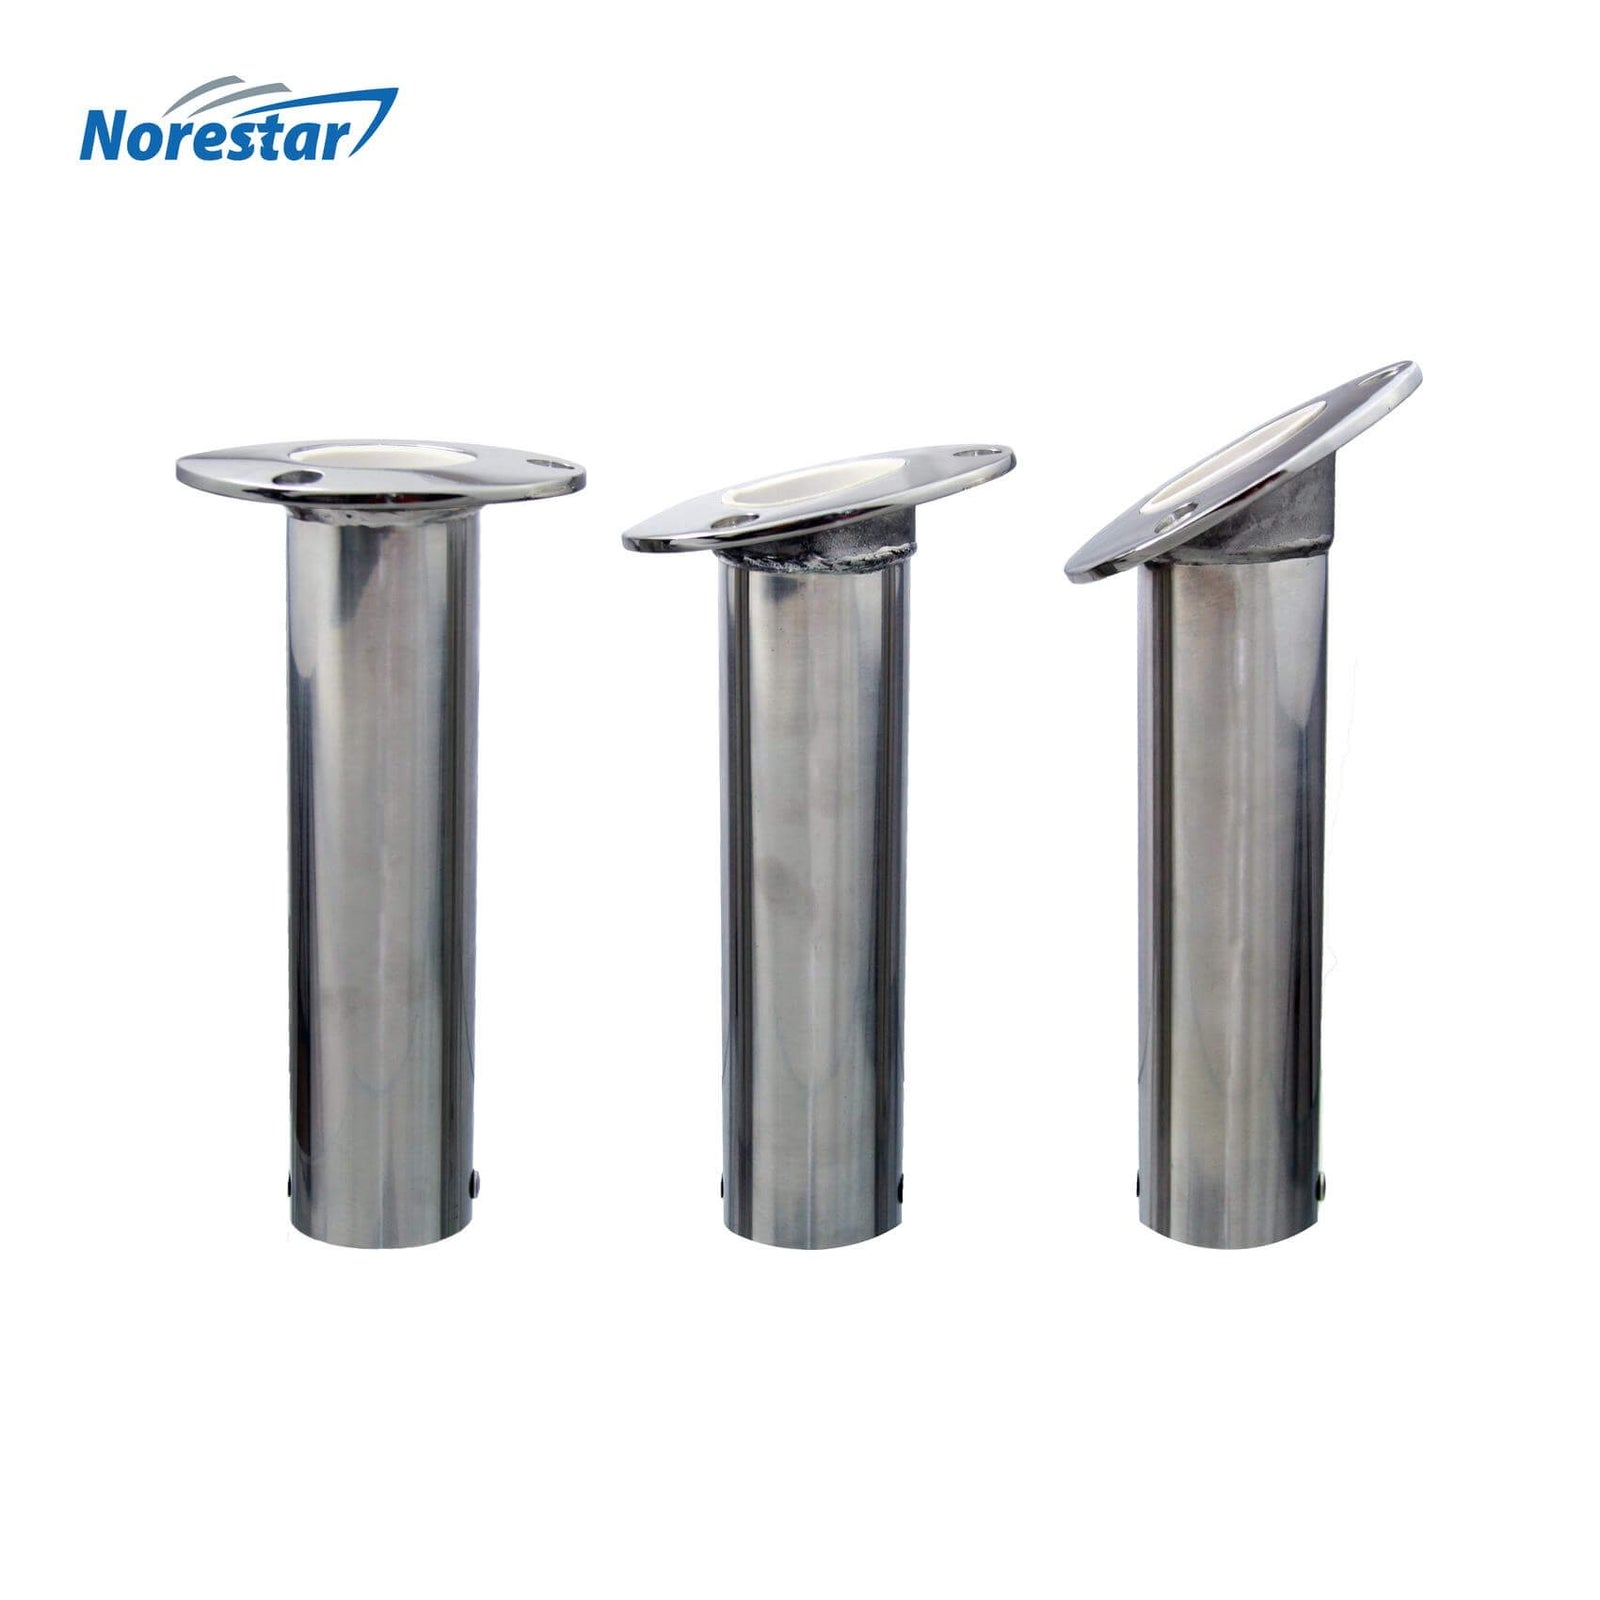 Flush Mounted Stainless Steel Rod Holder, Angle Comparison